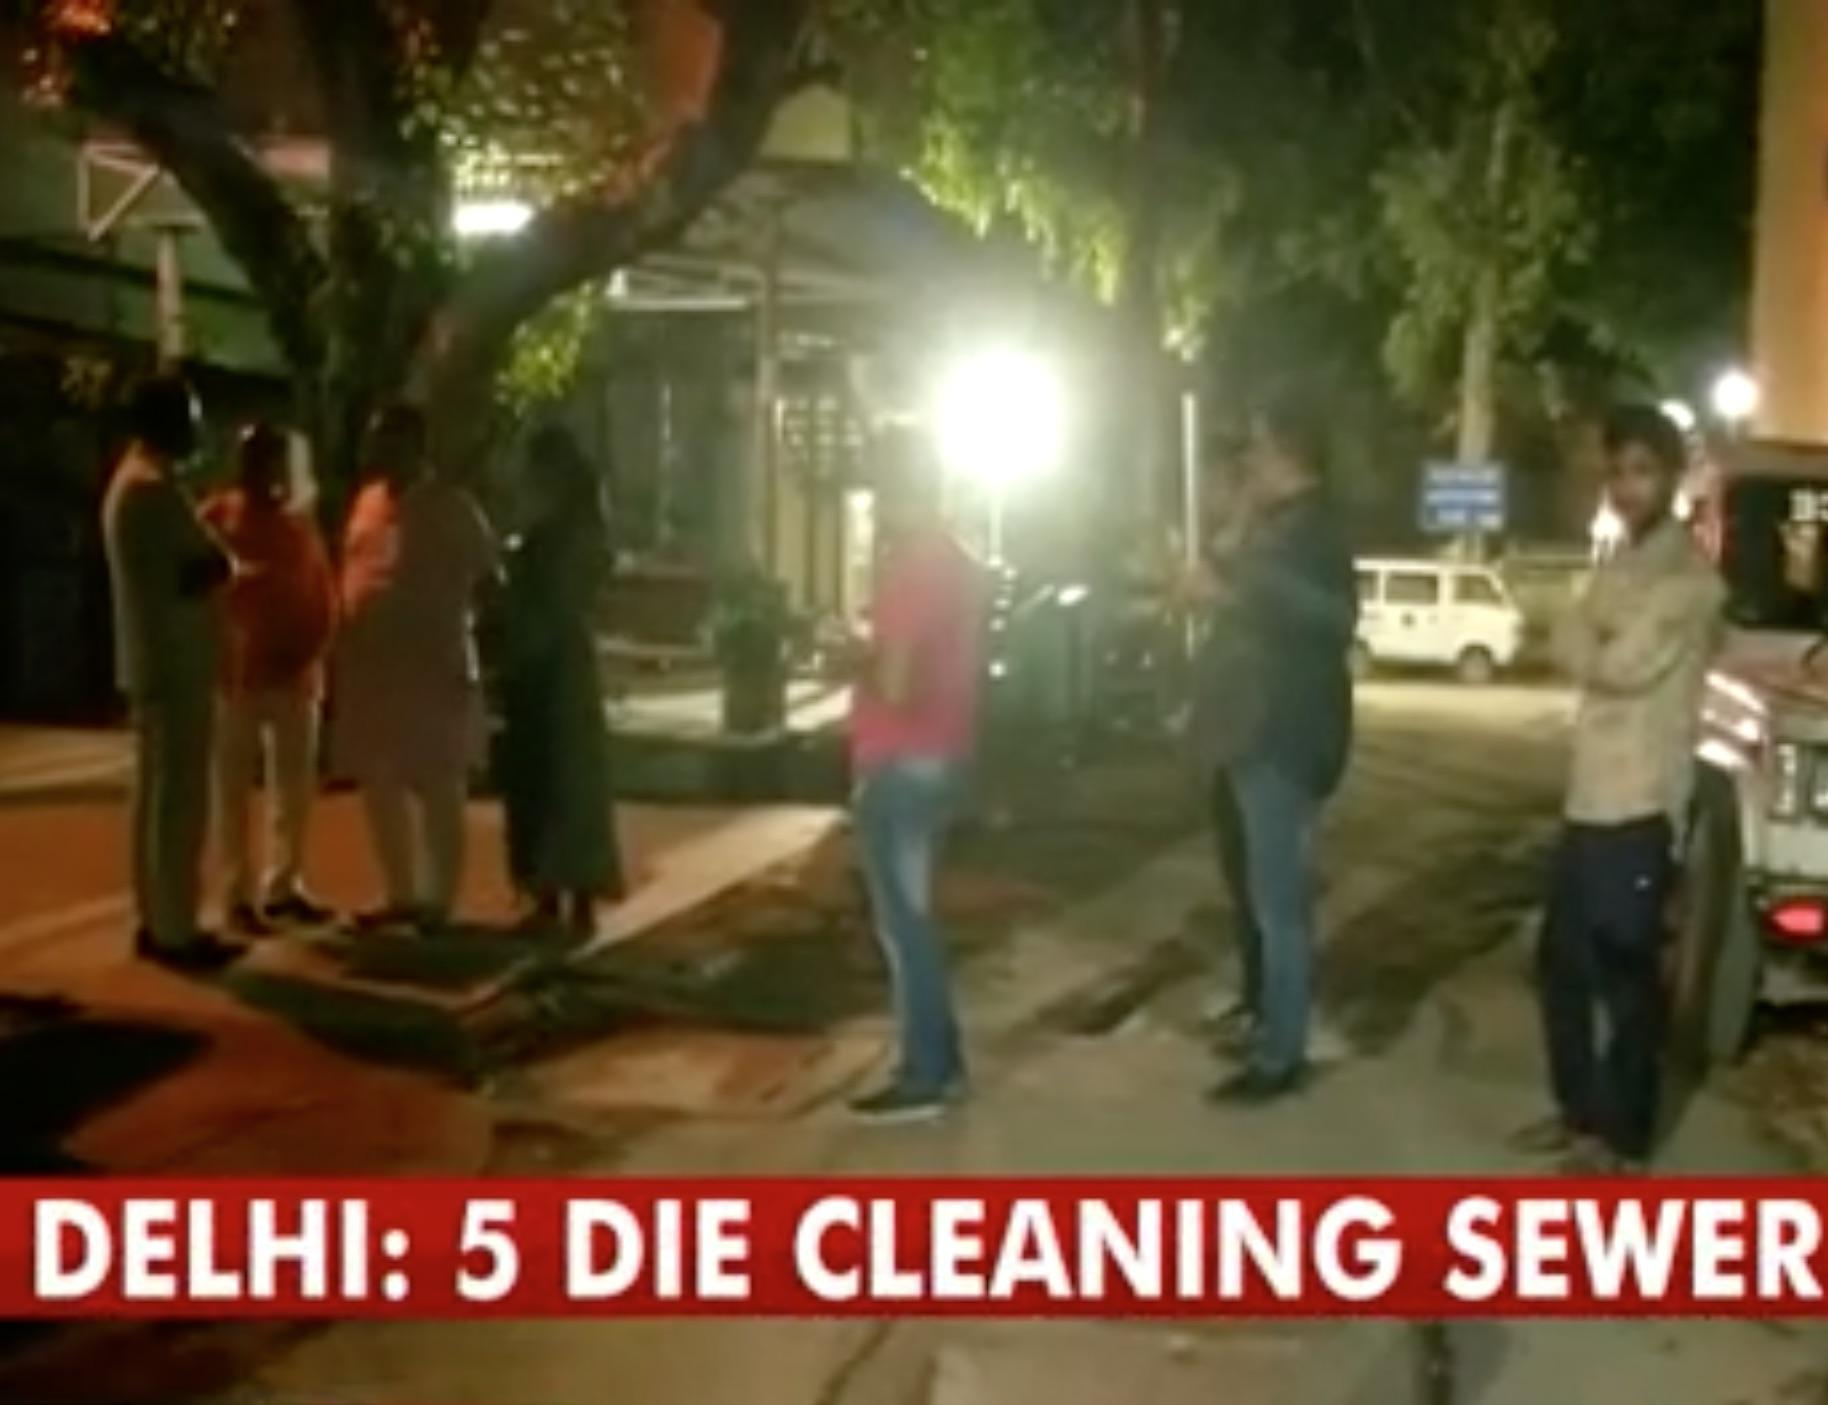 Five men die from toxic fumes while cleaning septic tank at luxury Delhi apartment block